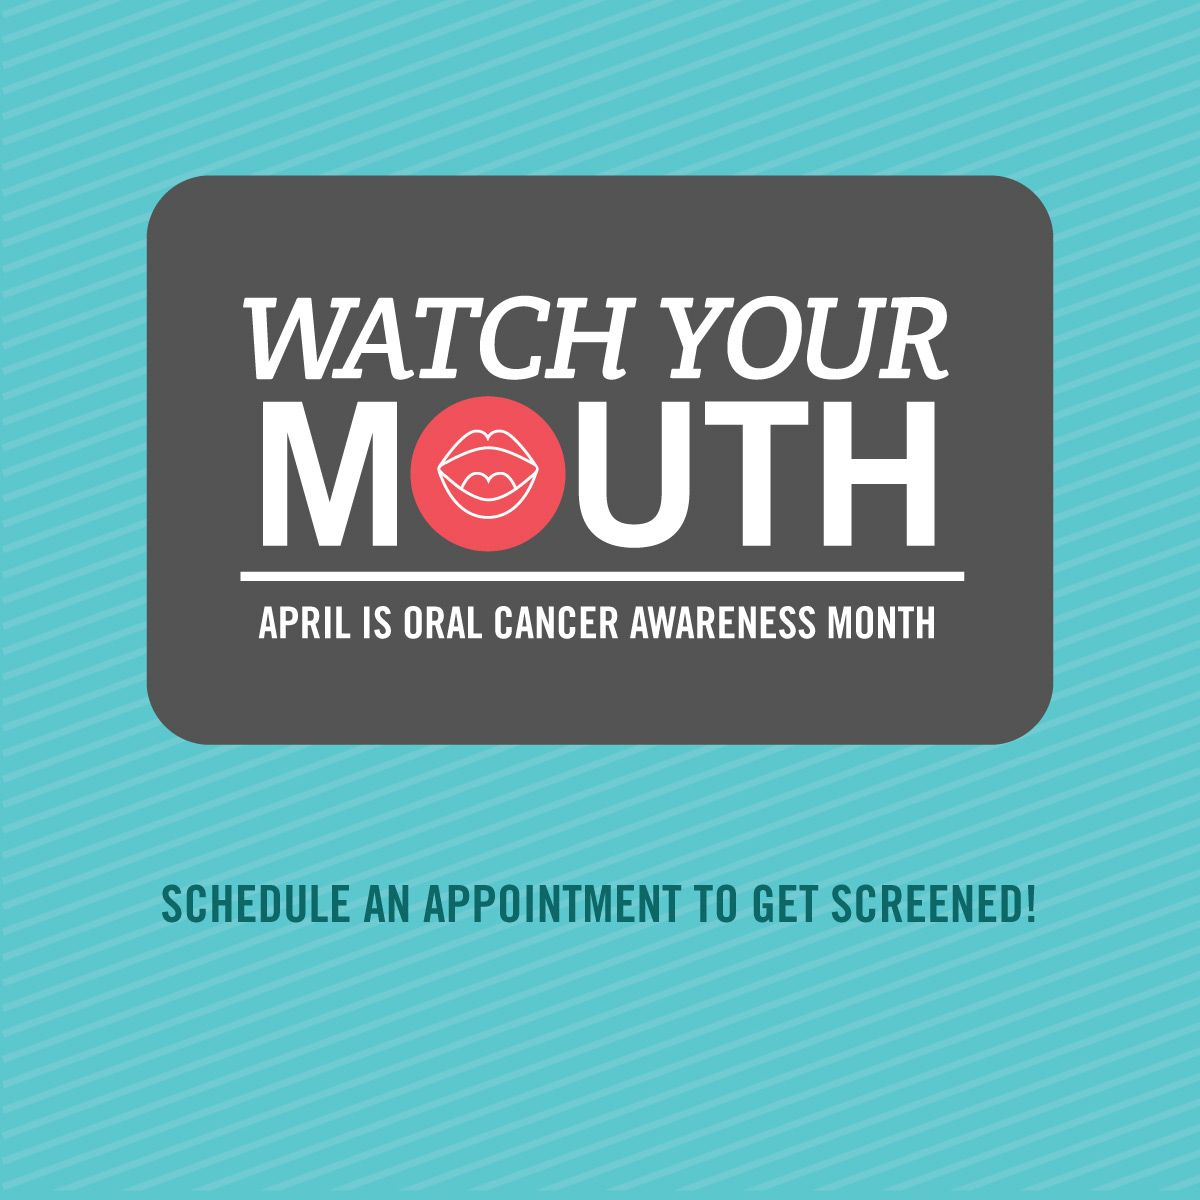 WATCH YOUR MOUTH! April is Oral Cancer Awareness Month, so